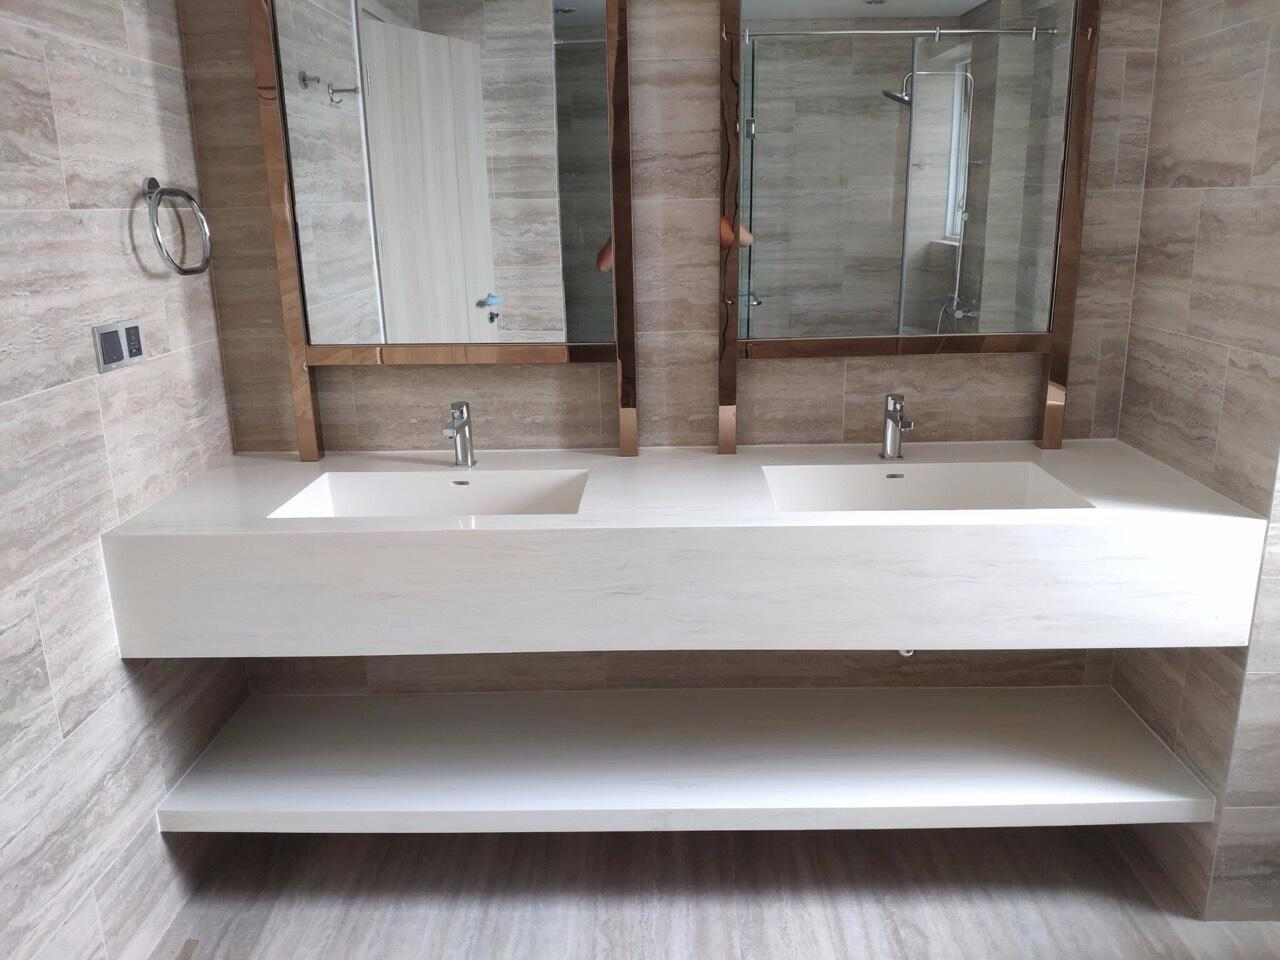 Customized Vanity Tops and Wash Basins